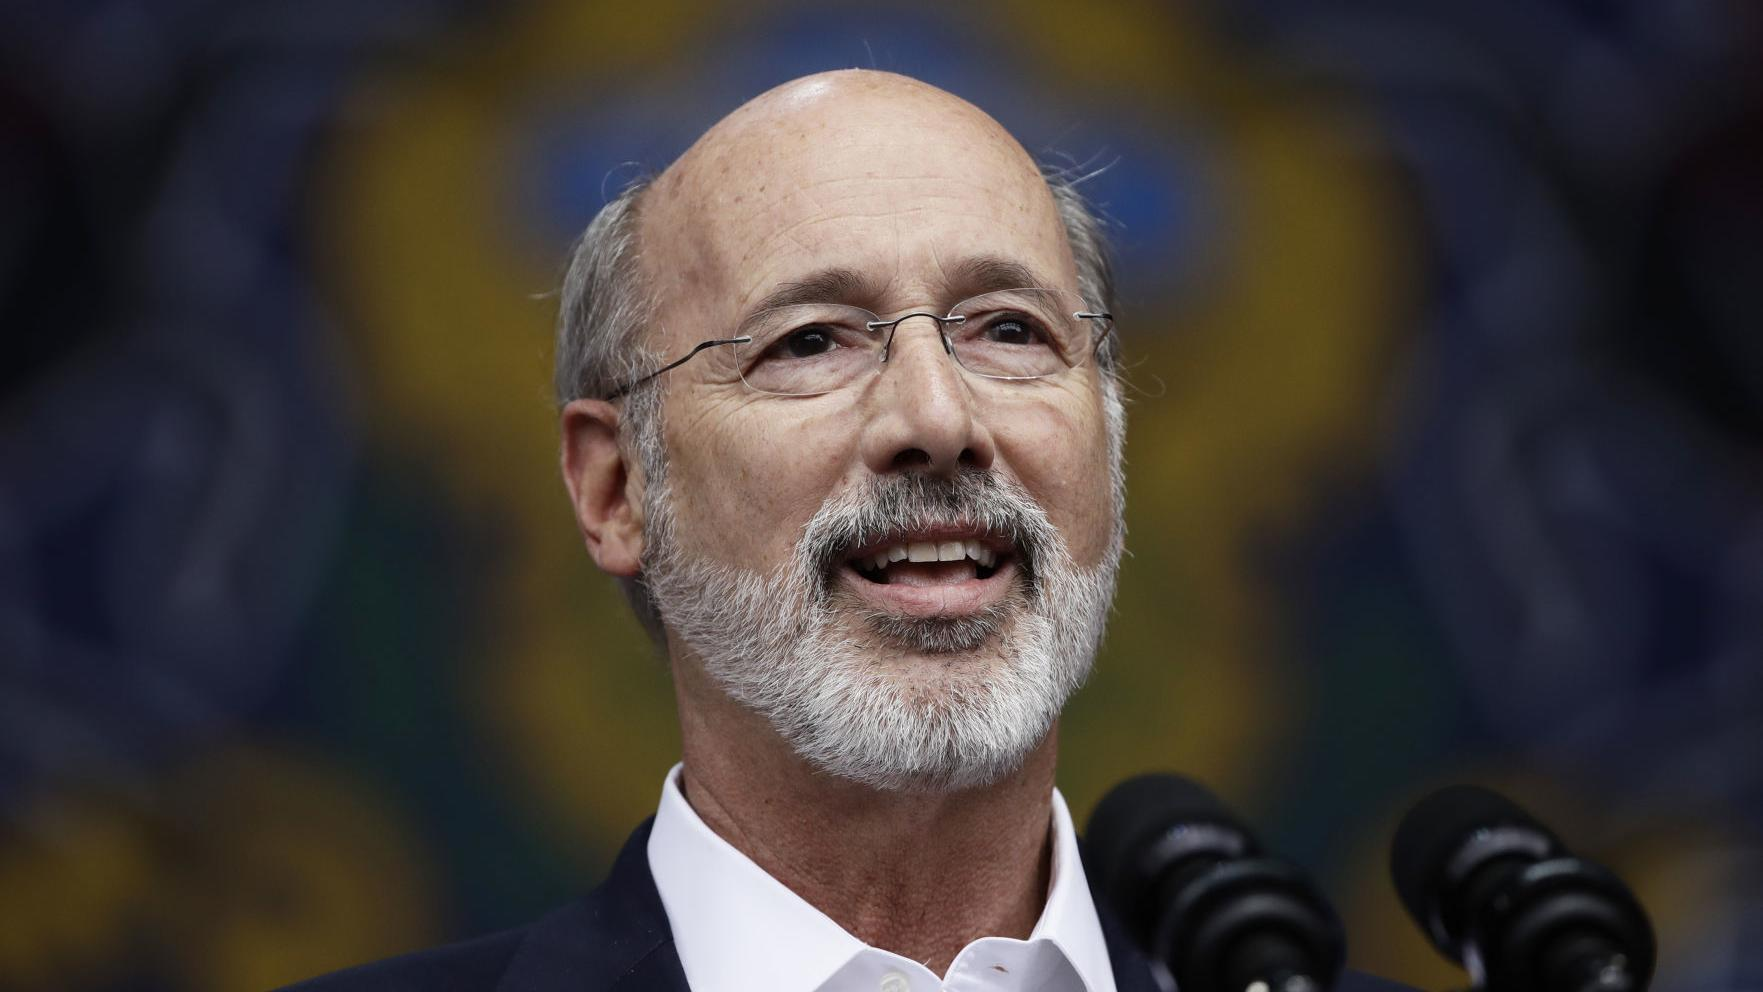 Wolf reviewing plan to cap greenhouse gases